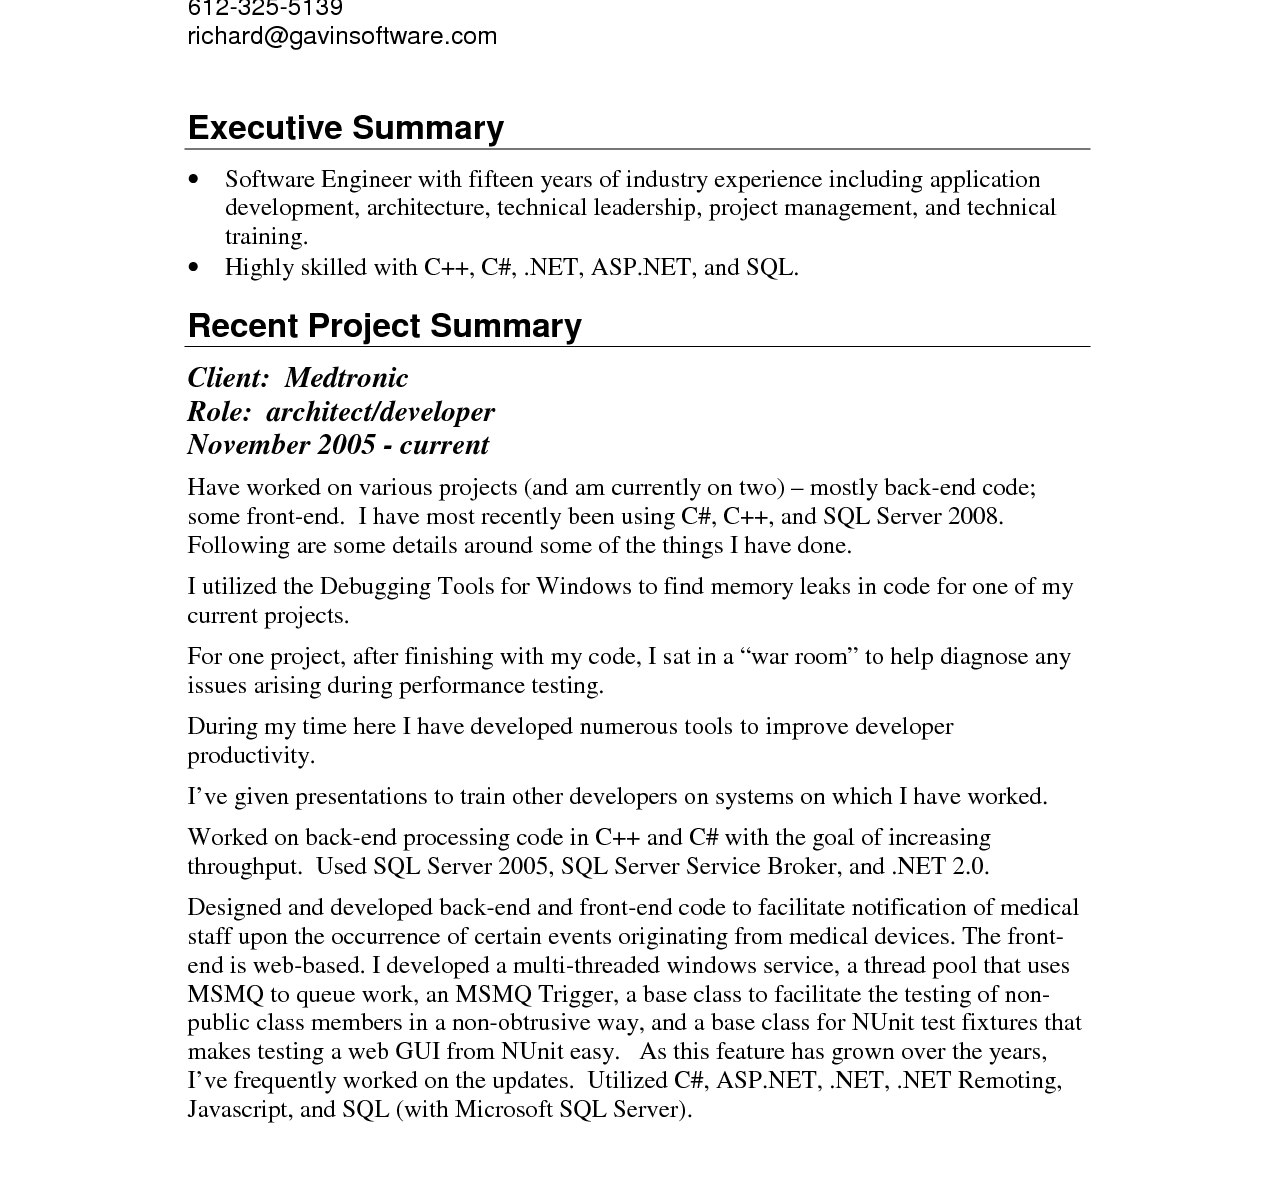 Executive Summary Template For Business Plan Templates Farmer In Executive Summary Template For Business Plan